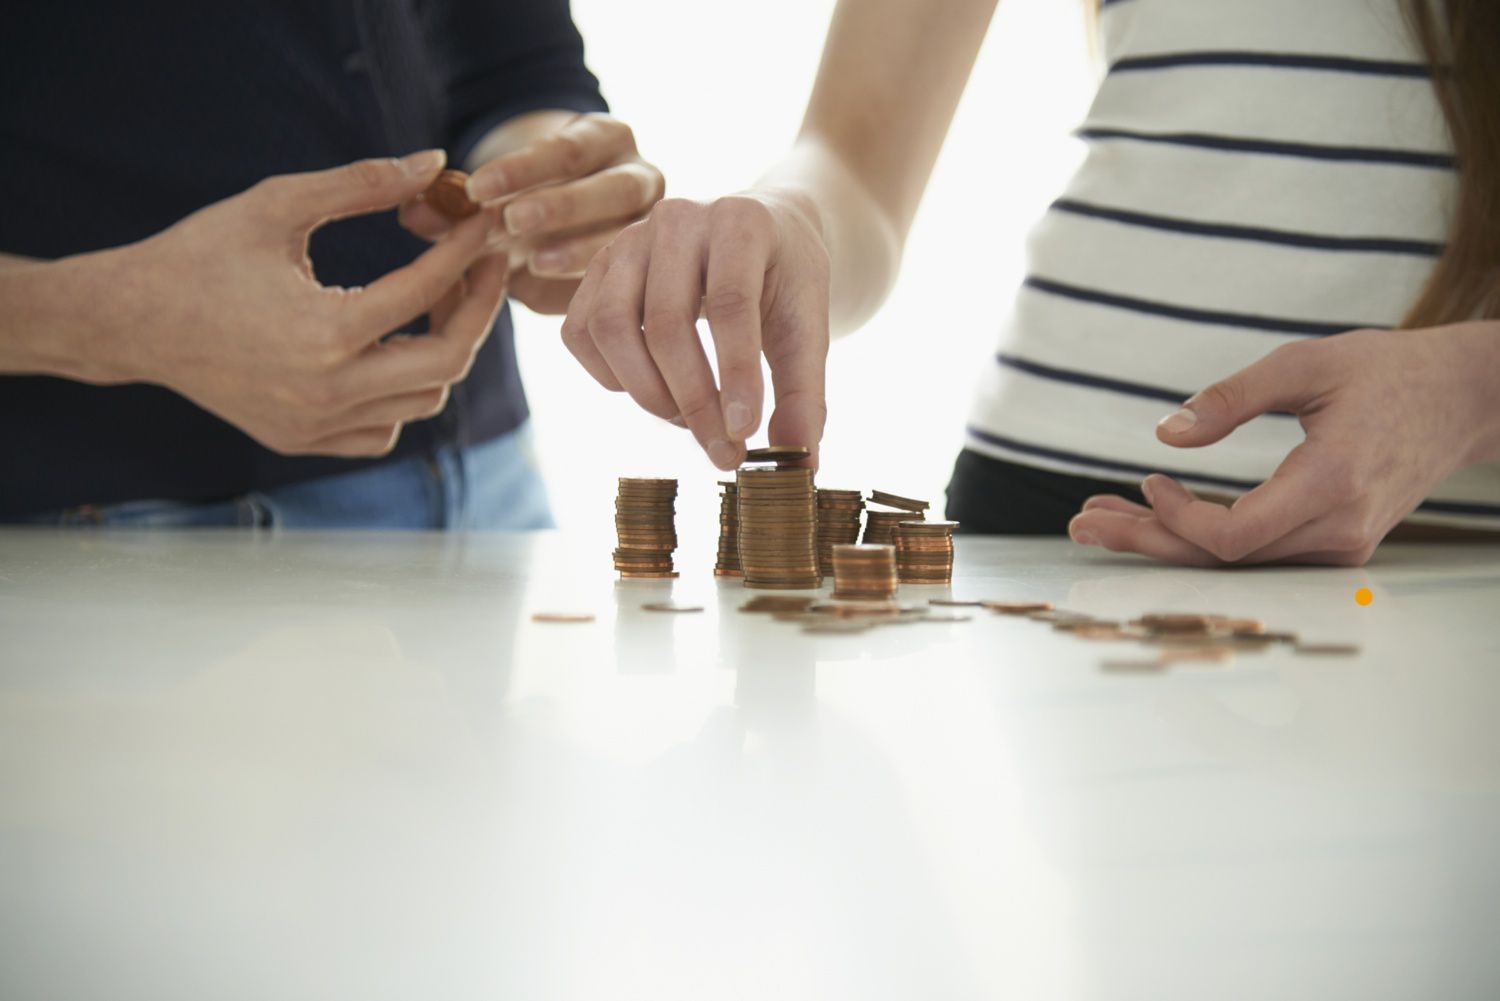 Close-up of the hands of a man and woman stacking coins